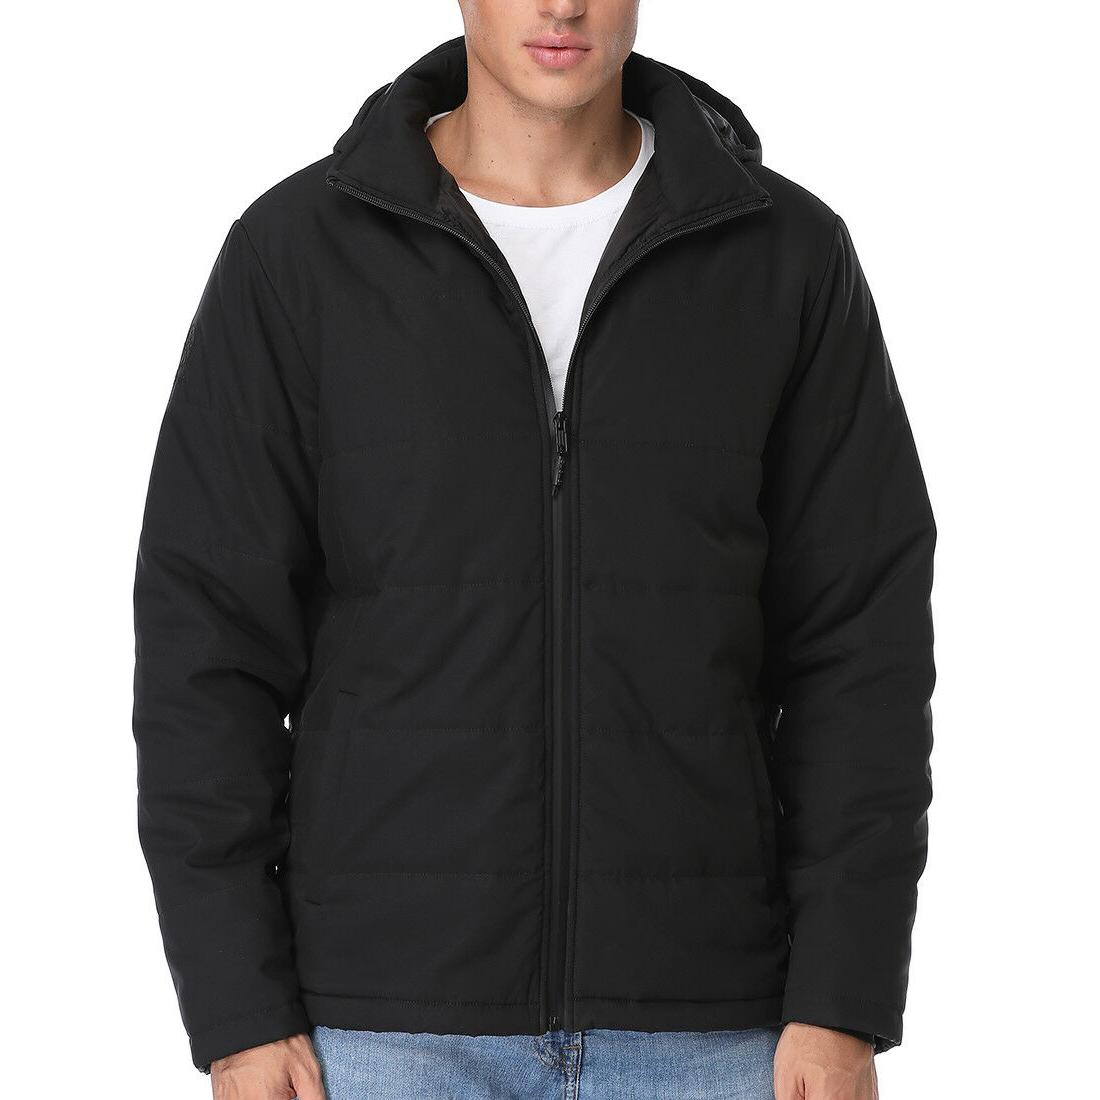 Heat Winter Outdoor Warm Clothing Pack